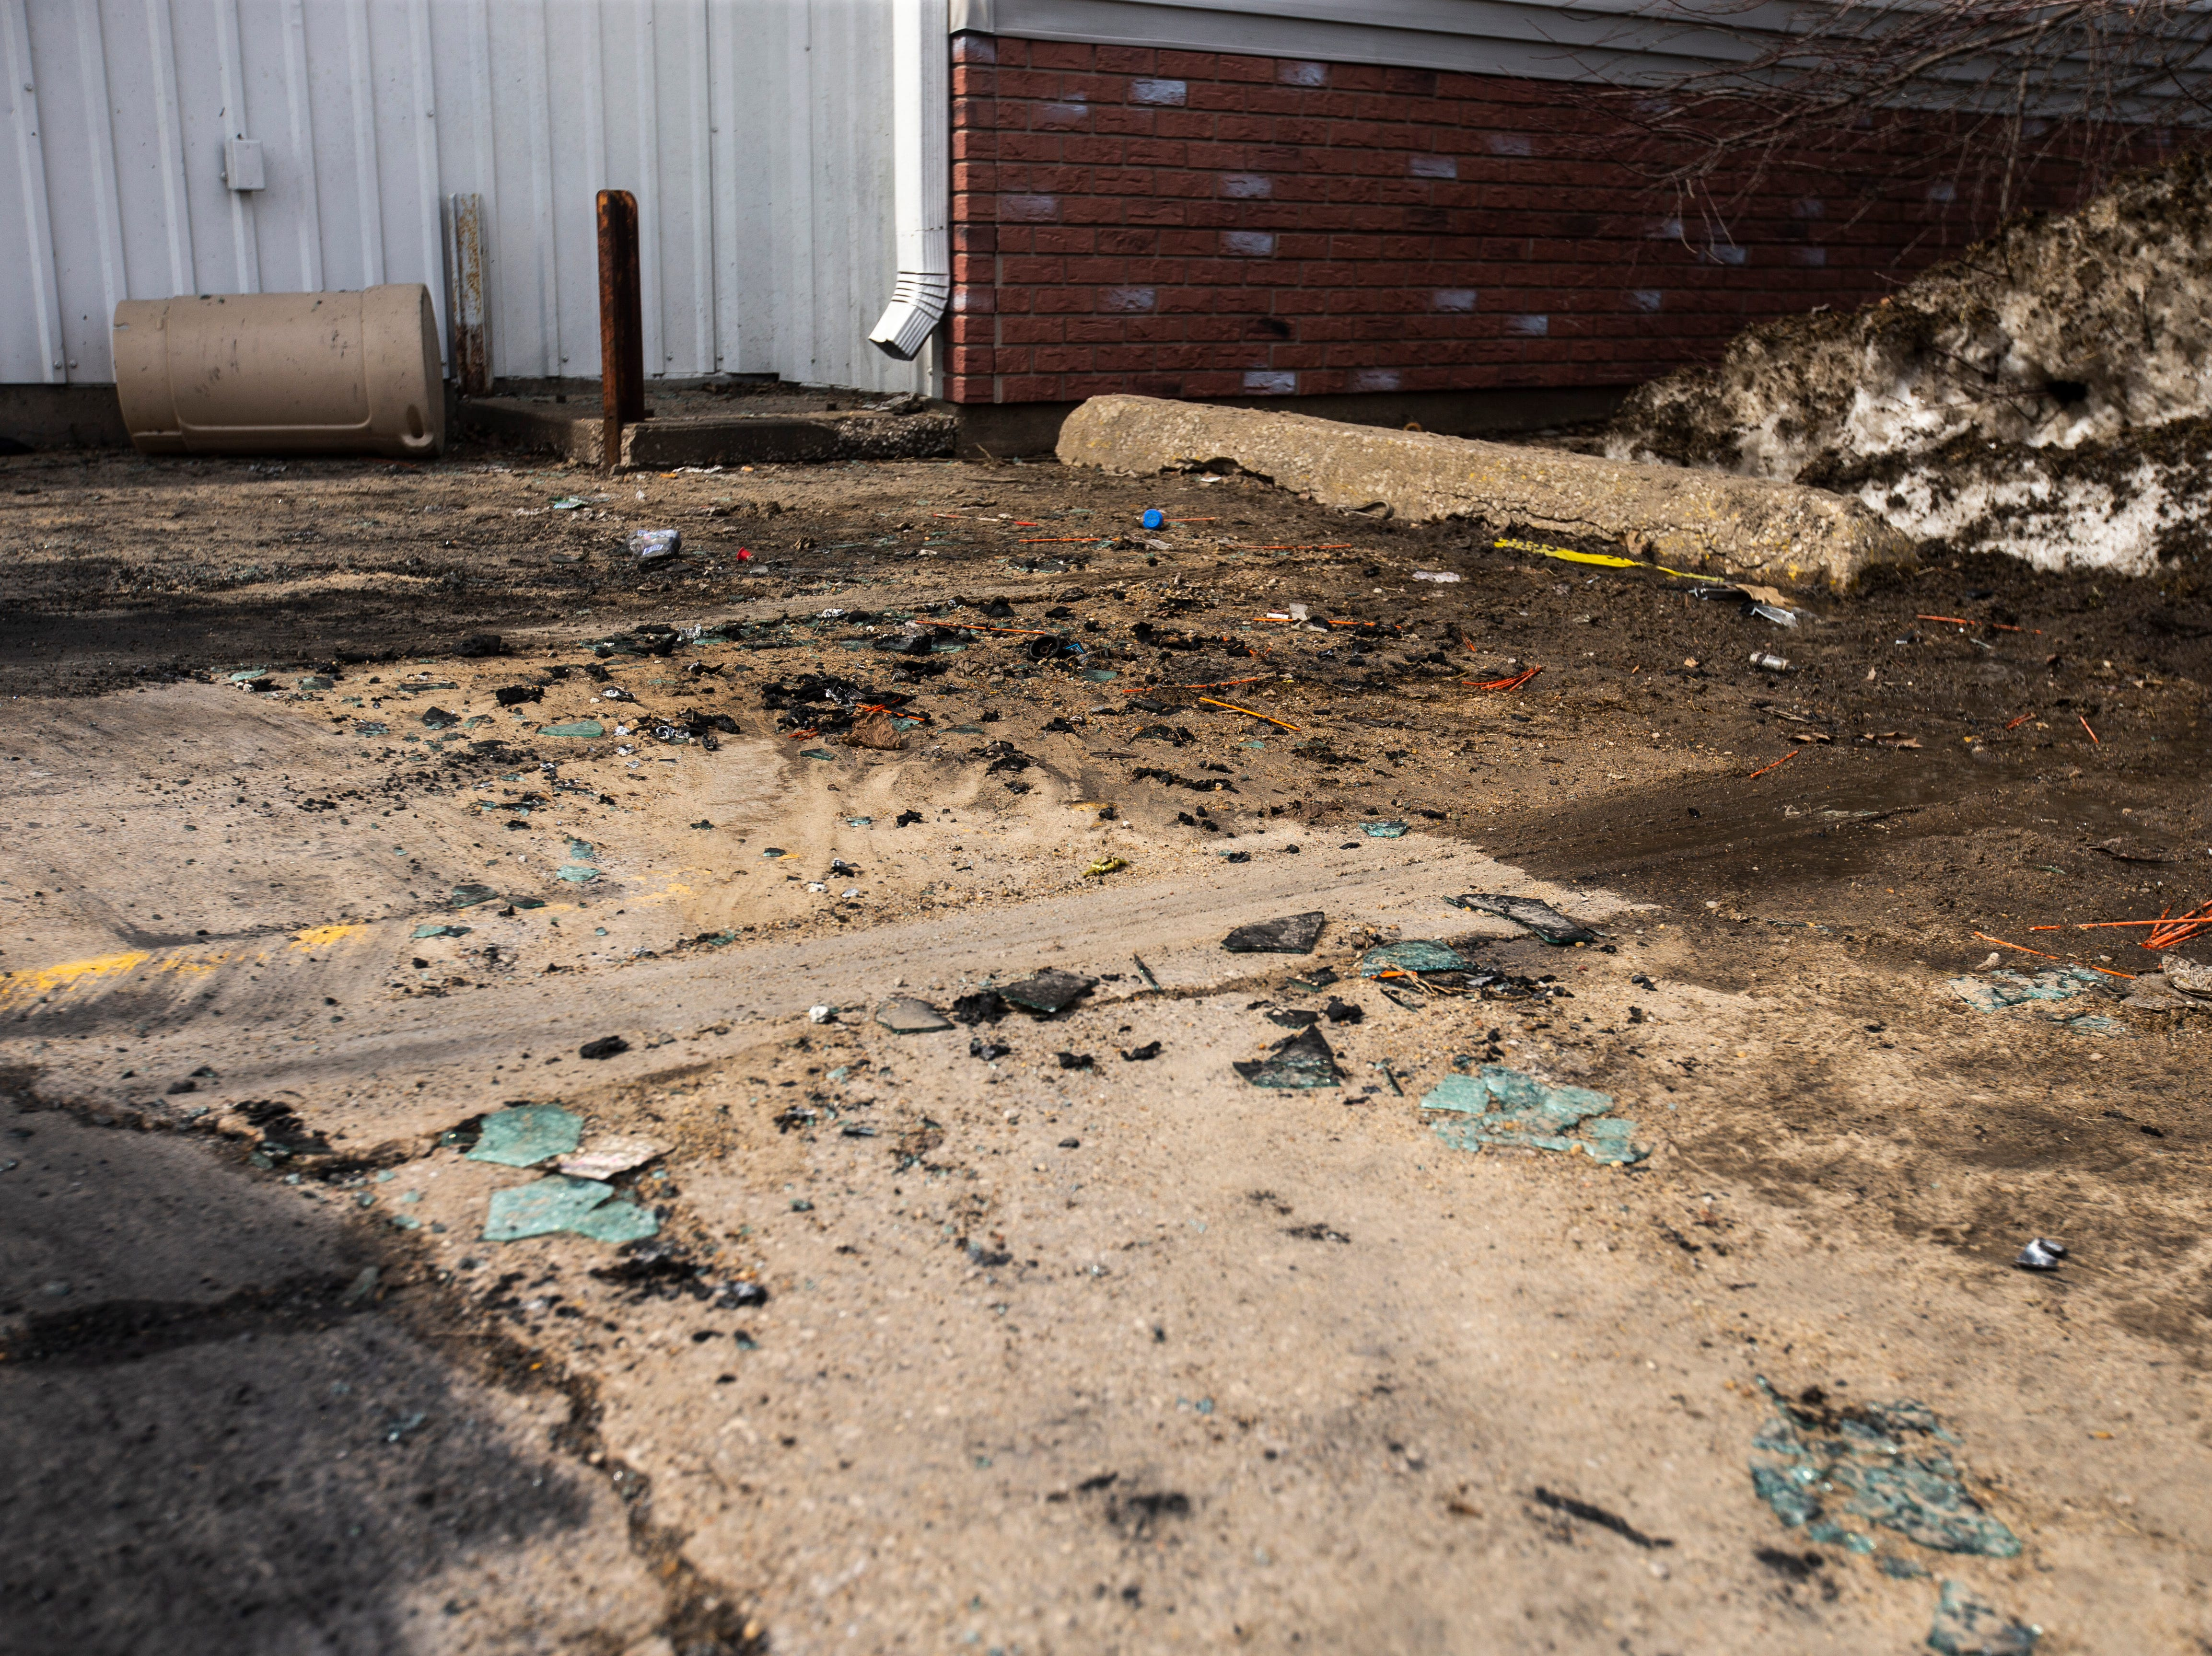 Debris remains from a car fire, Tuesday, March 19, 2019, at 1213 Gilbert Court, in the parking lot of the former Crowded Closet store in Iowa City, Iowa. One person died in the car fire Monday night.